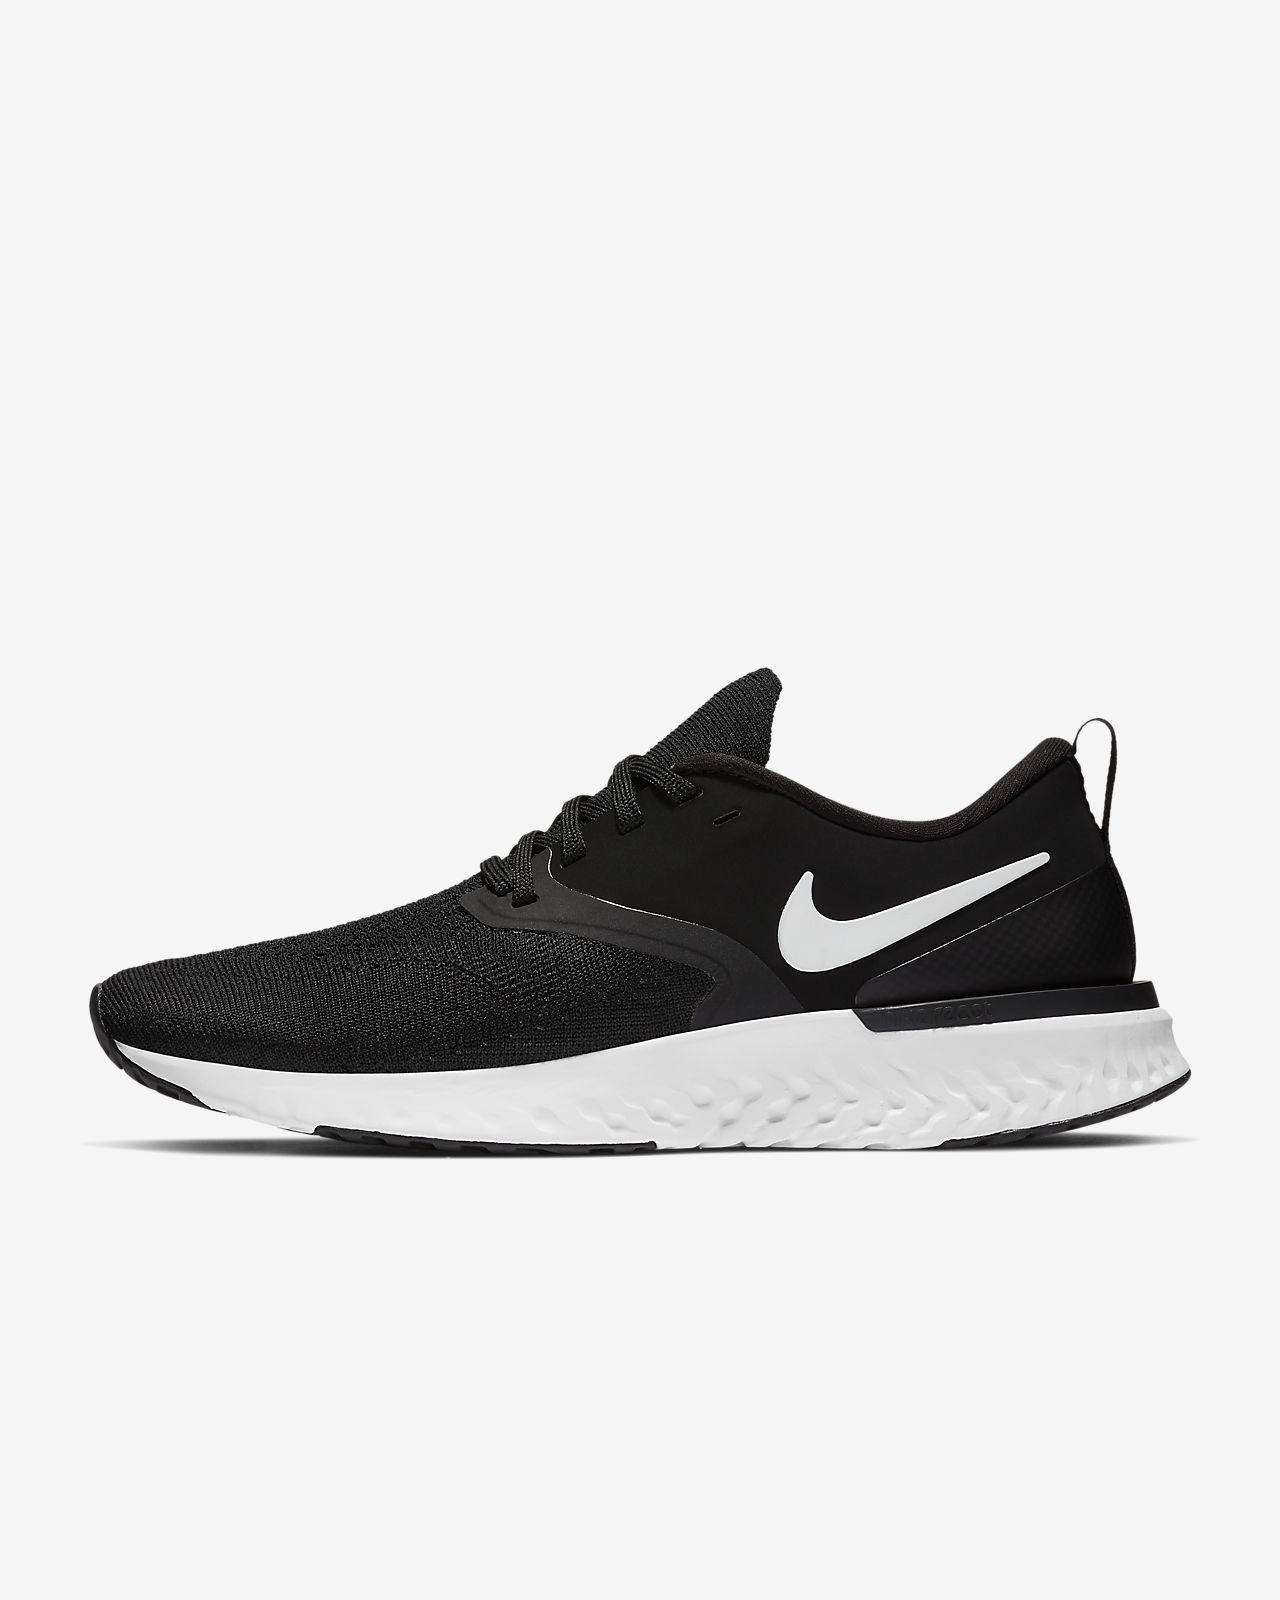 For Sales Nike Free Run 2 Running Shoes Black Iron